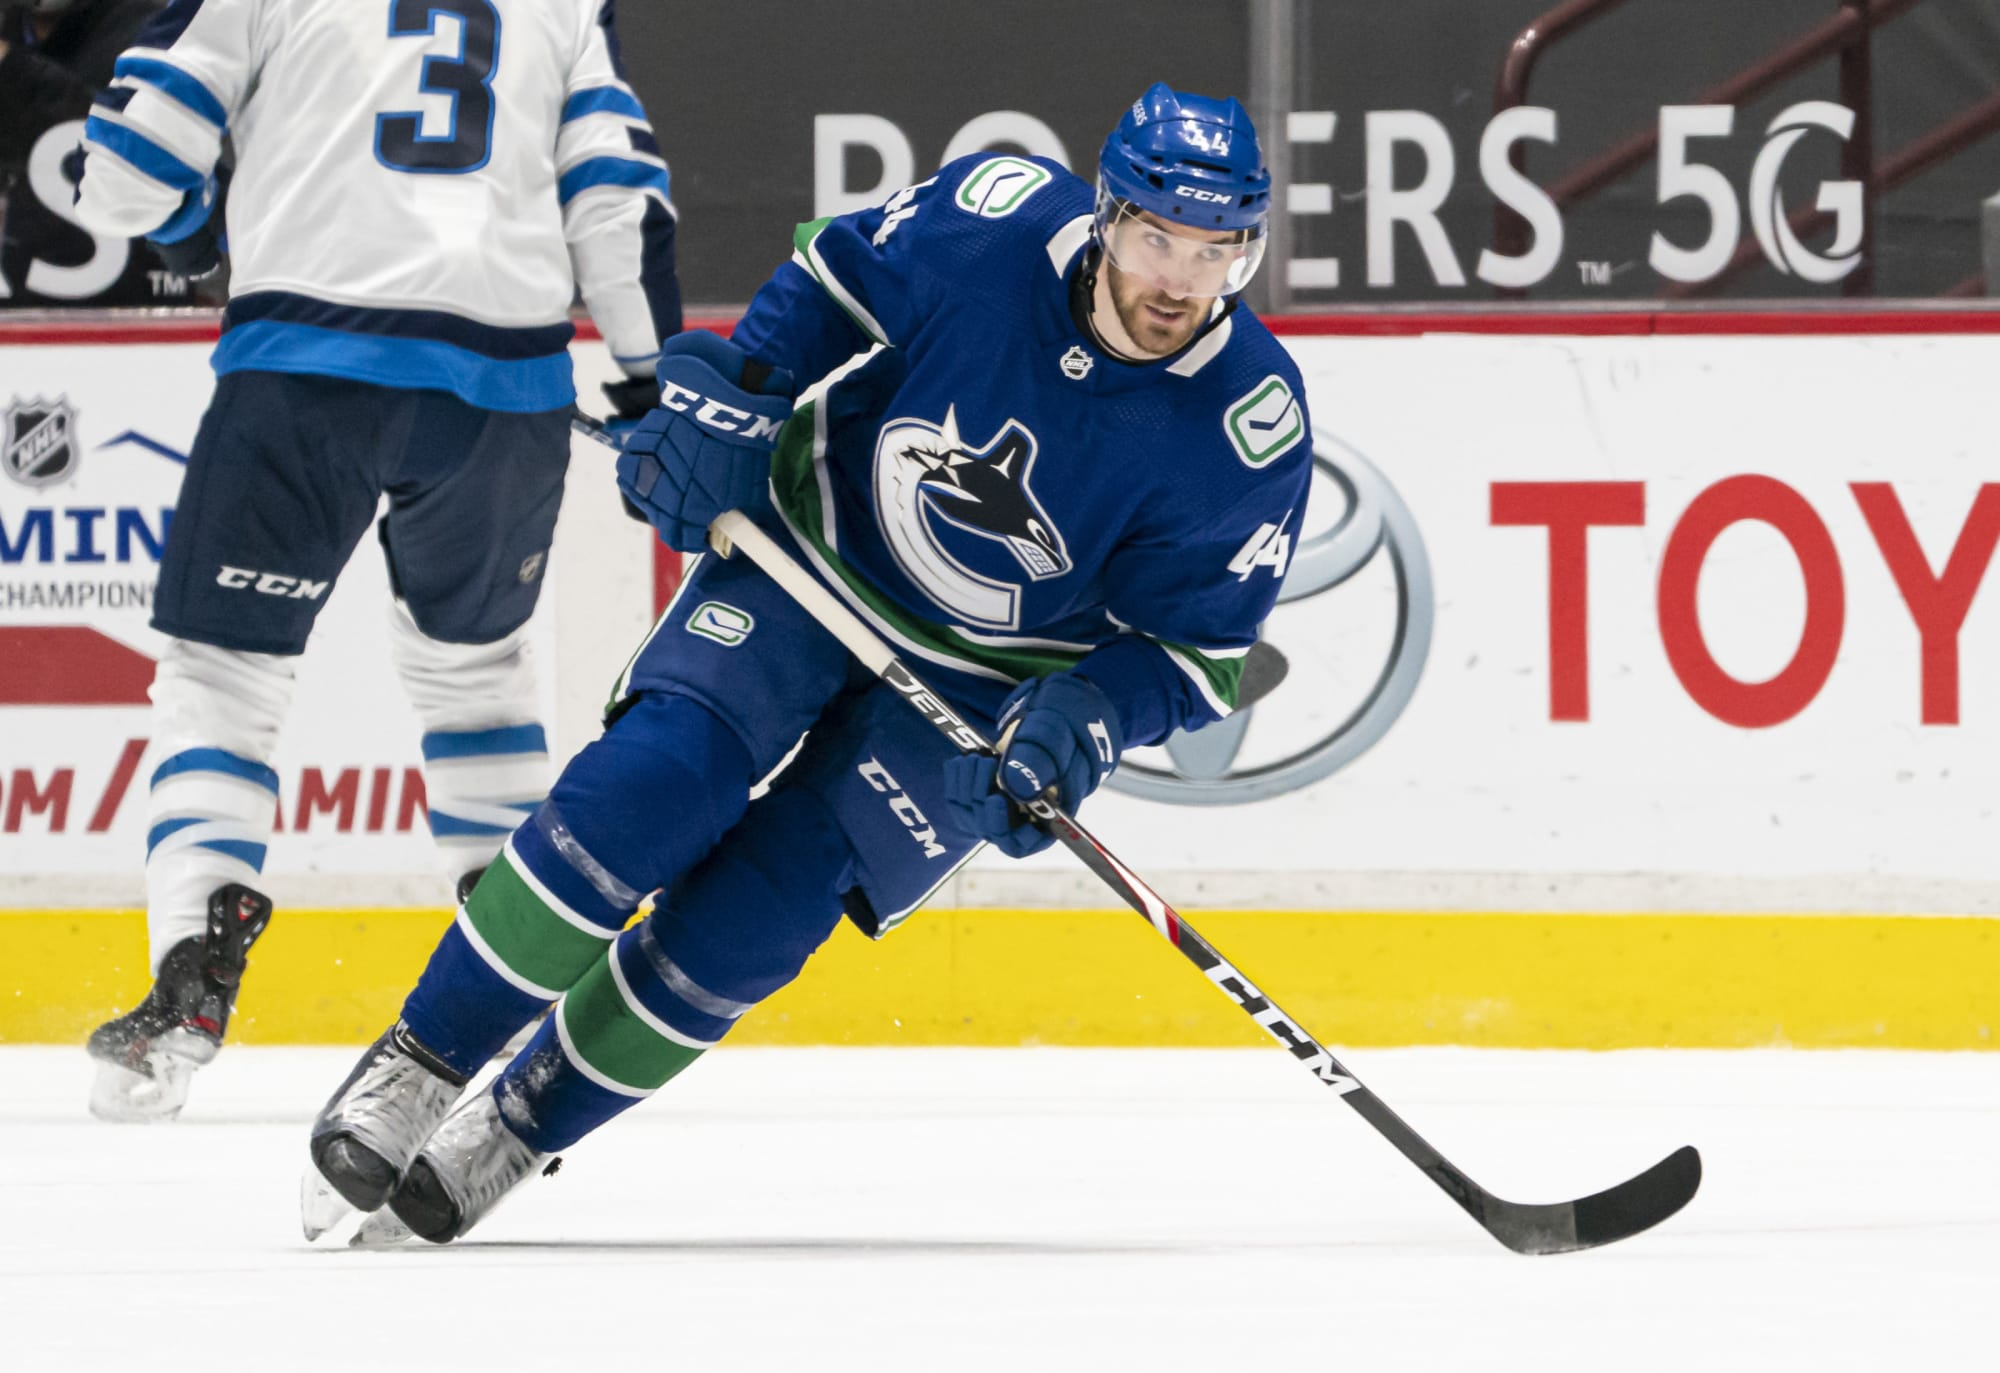 Canucks: Tyler Graovac signs KHL contract